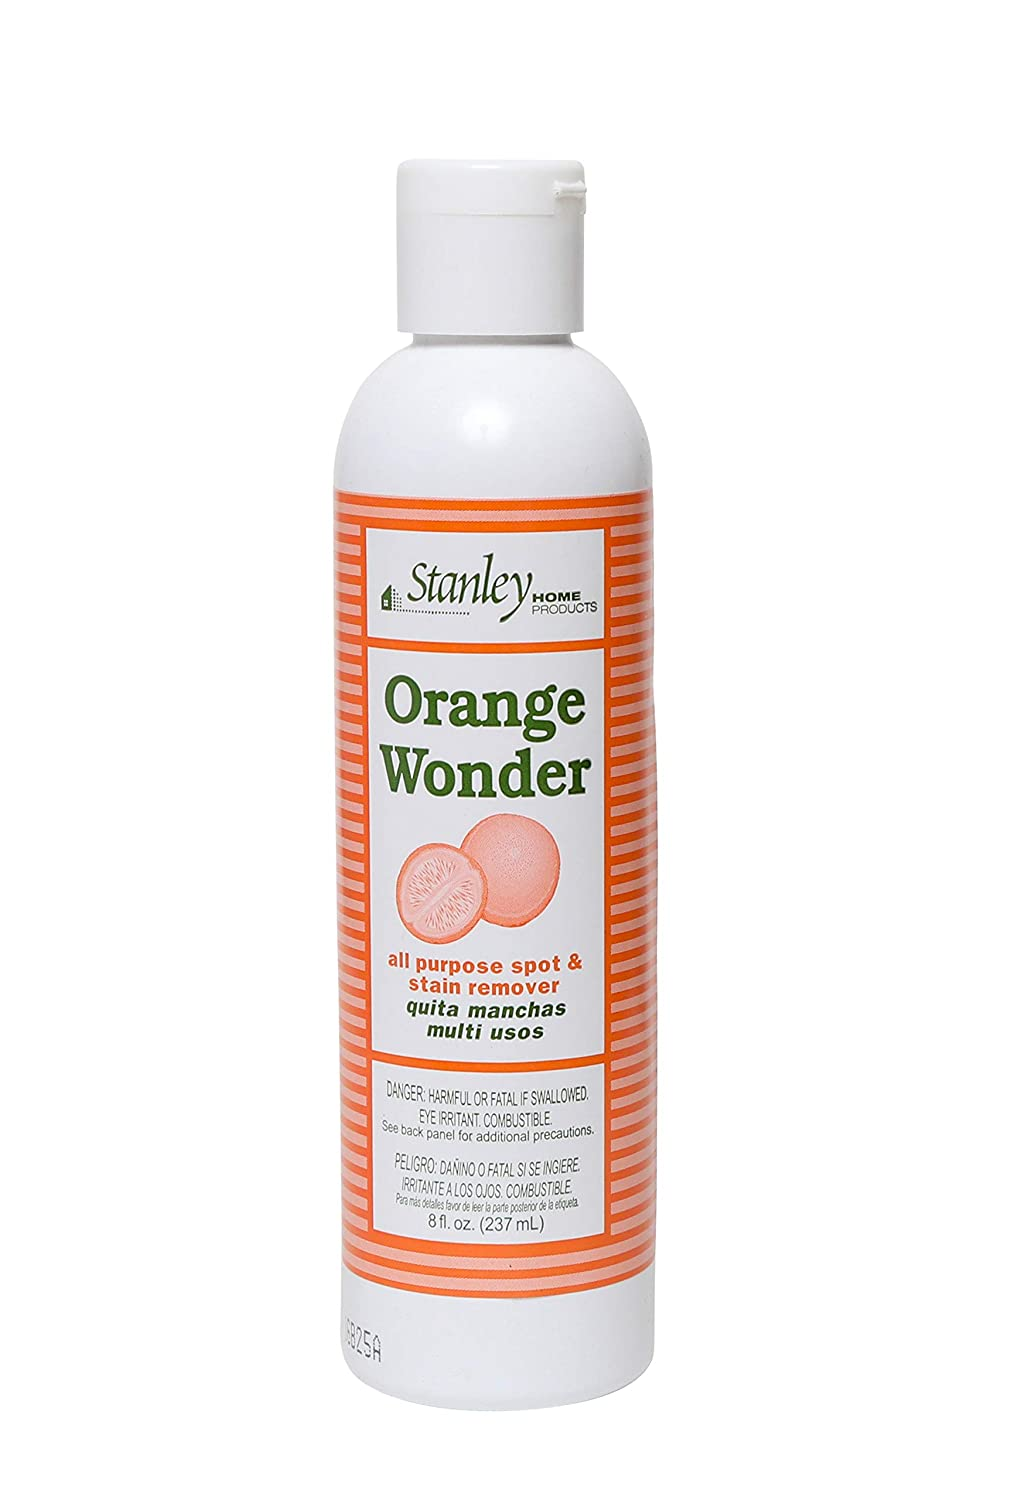 Stanley Home Products Orange Wonder All-Purpose Spot and Stain Remover - Eco-Friendly Oil & Grease Cleaning & Laundry Detergent for Baby & Kid's Clothing, Carpet, Furniture, Couch & Car Interior